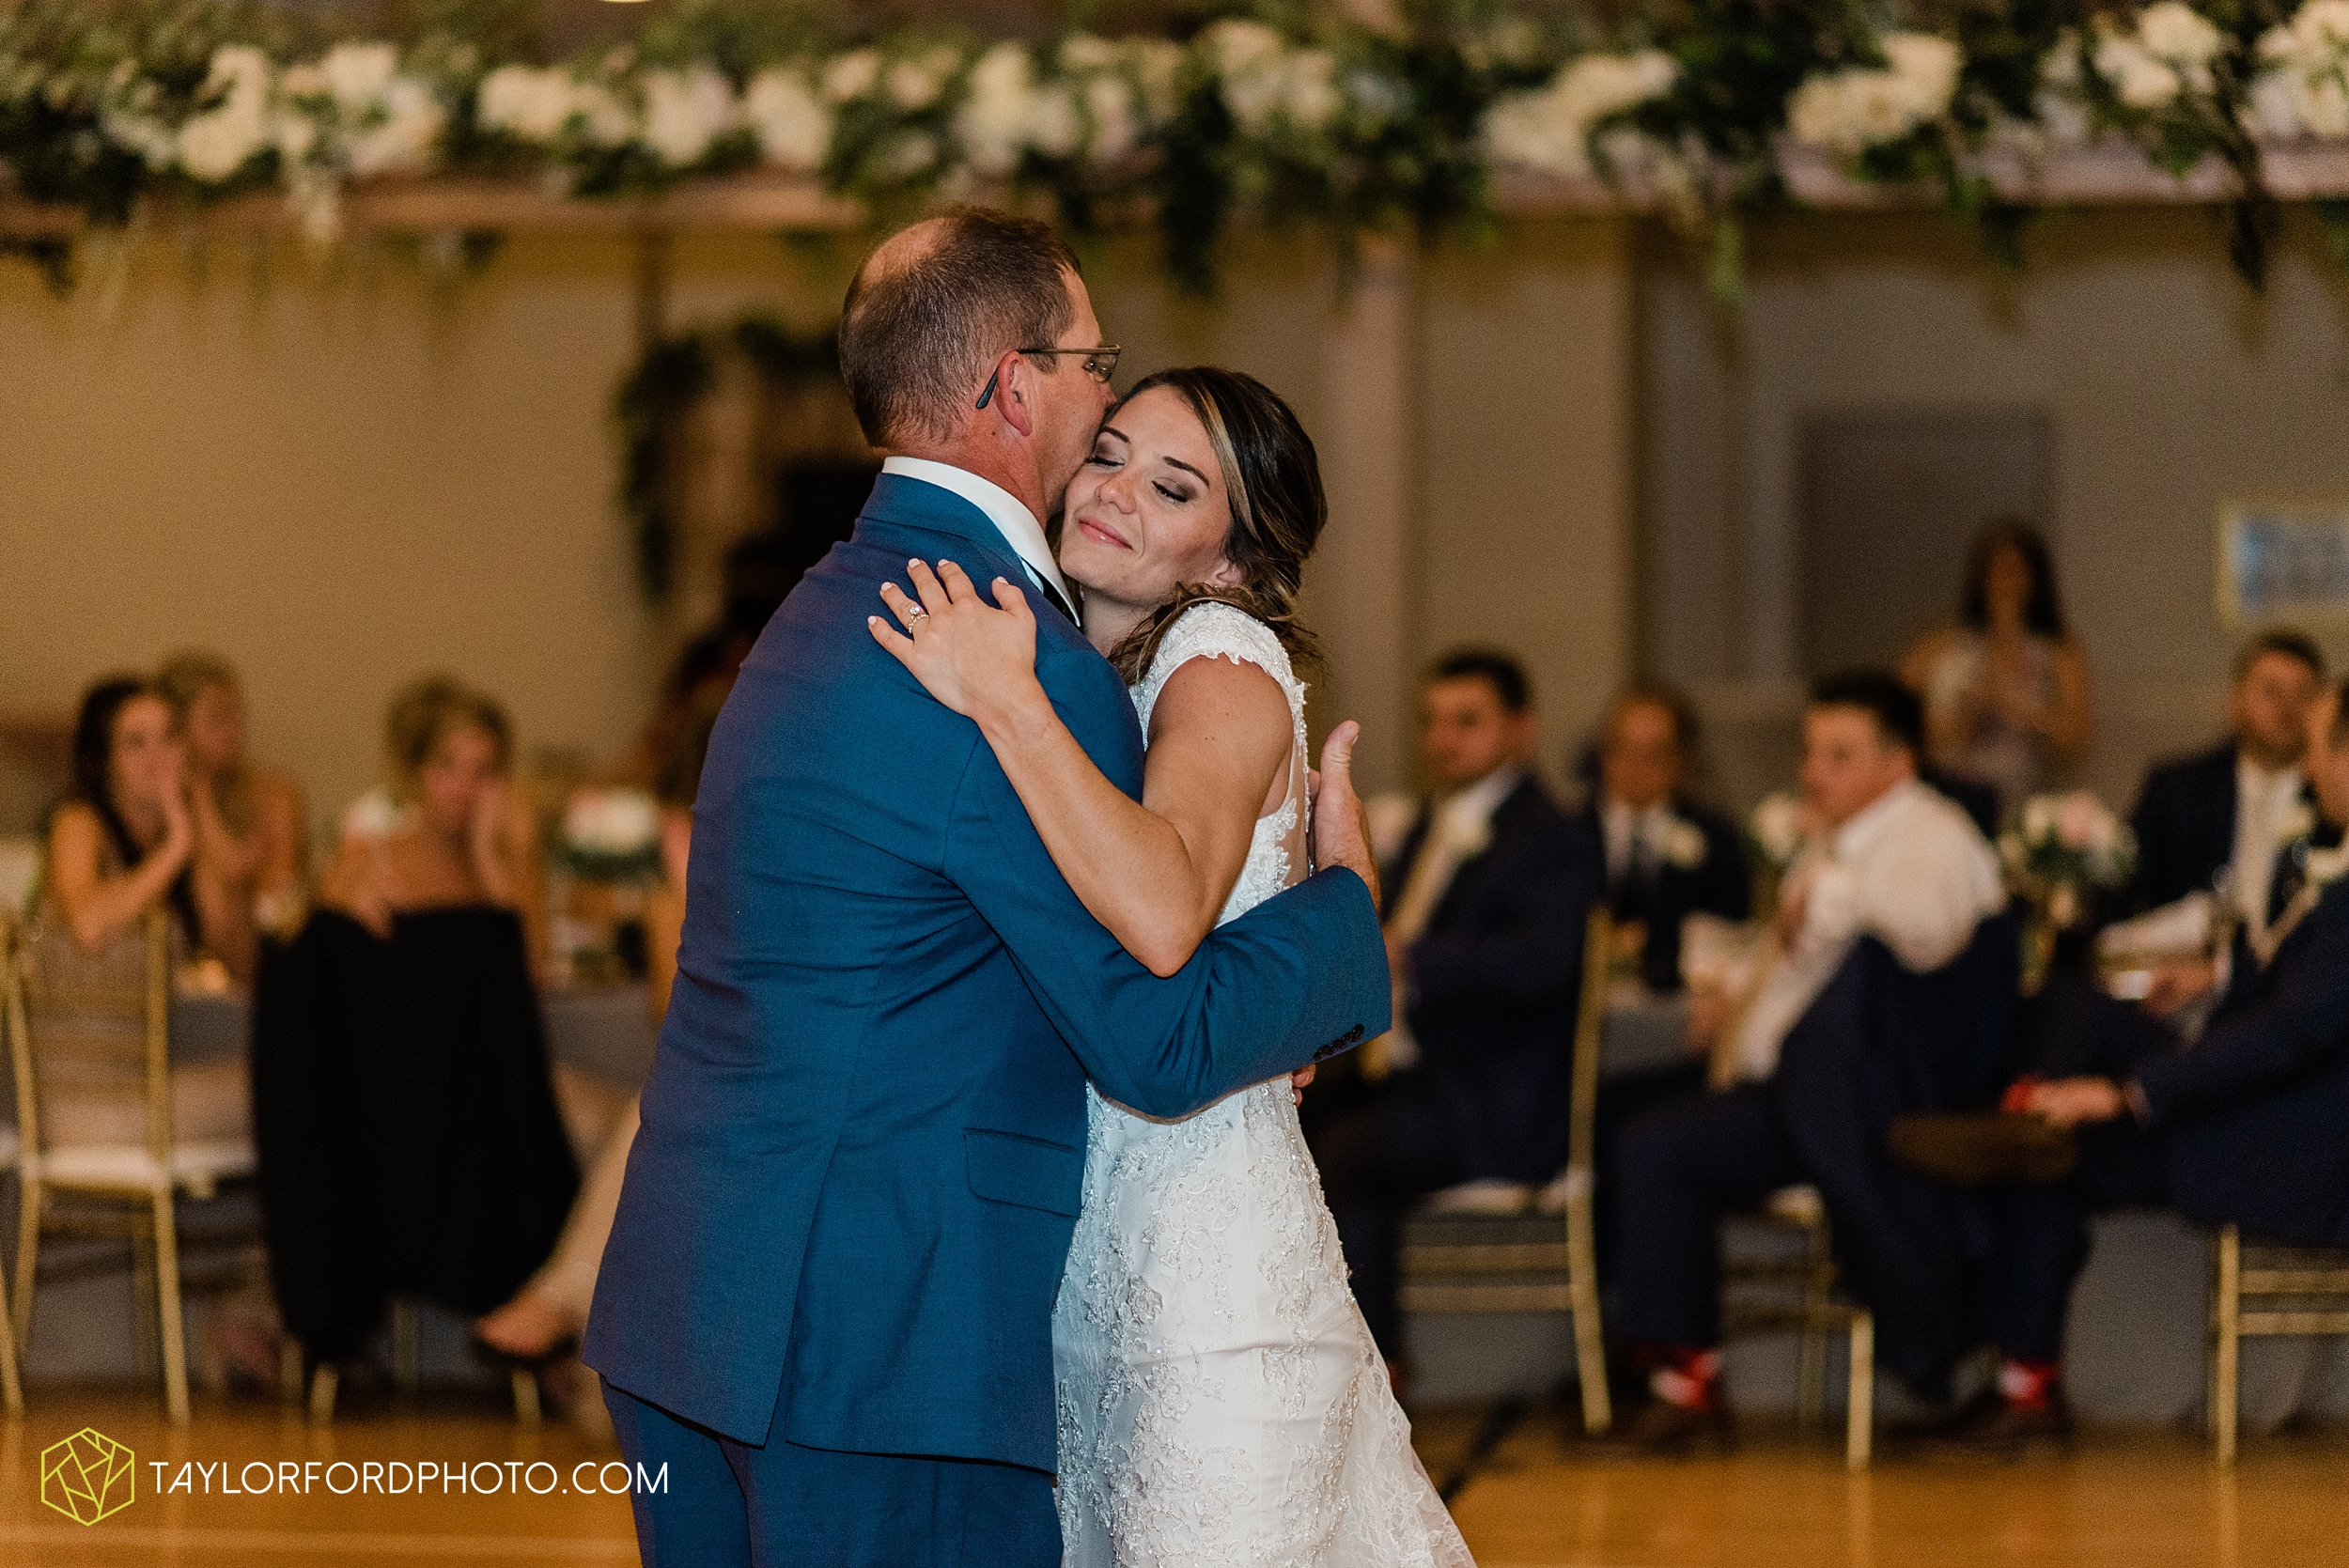 kacee-haden-sholl-second-story-saint-marys-knights-of-columbus-defiance-ohio-wedding-photographer-taylor-ford-photography_0195.jpg